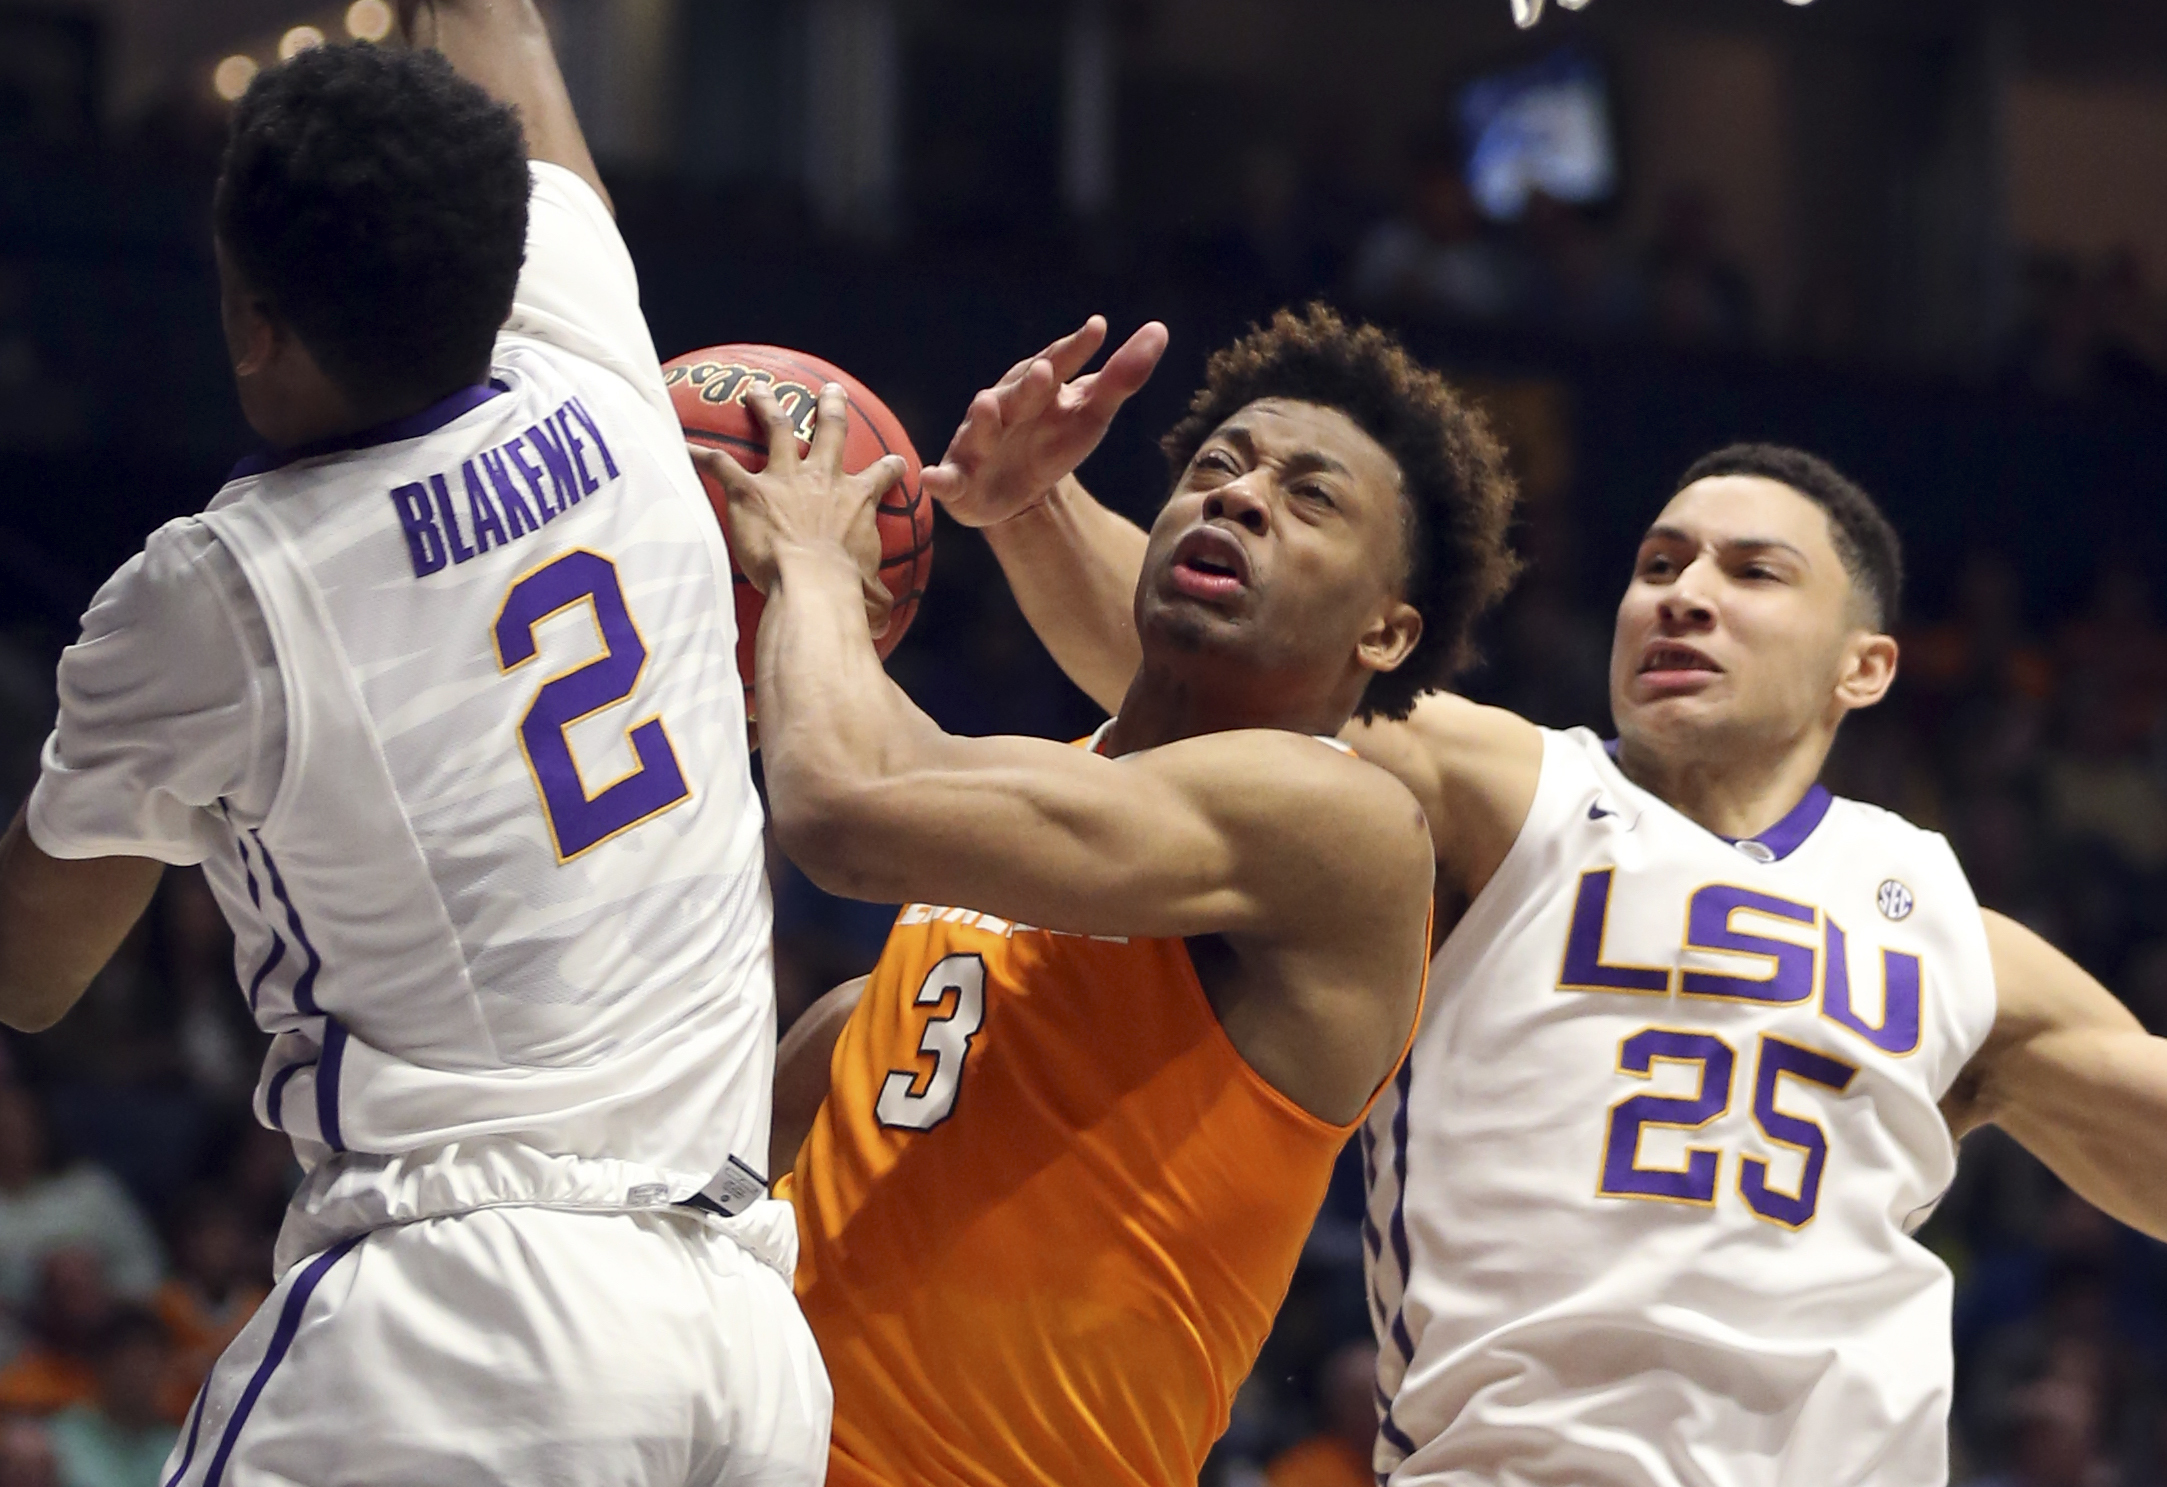 Tennessee's Robert Hubbs III (3) tries to drive against LSU's Ben Simmons (25) and Antonio Blakeney (2) during the second half of an NCAA college basketball game in the Southeastern Conference tournament in Nashville, Tenn., Friday, March 11, 2016. (AP Ph